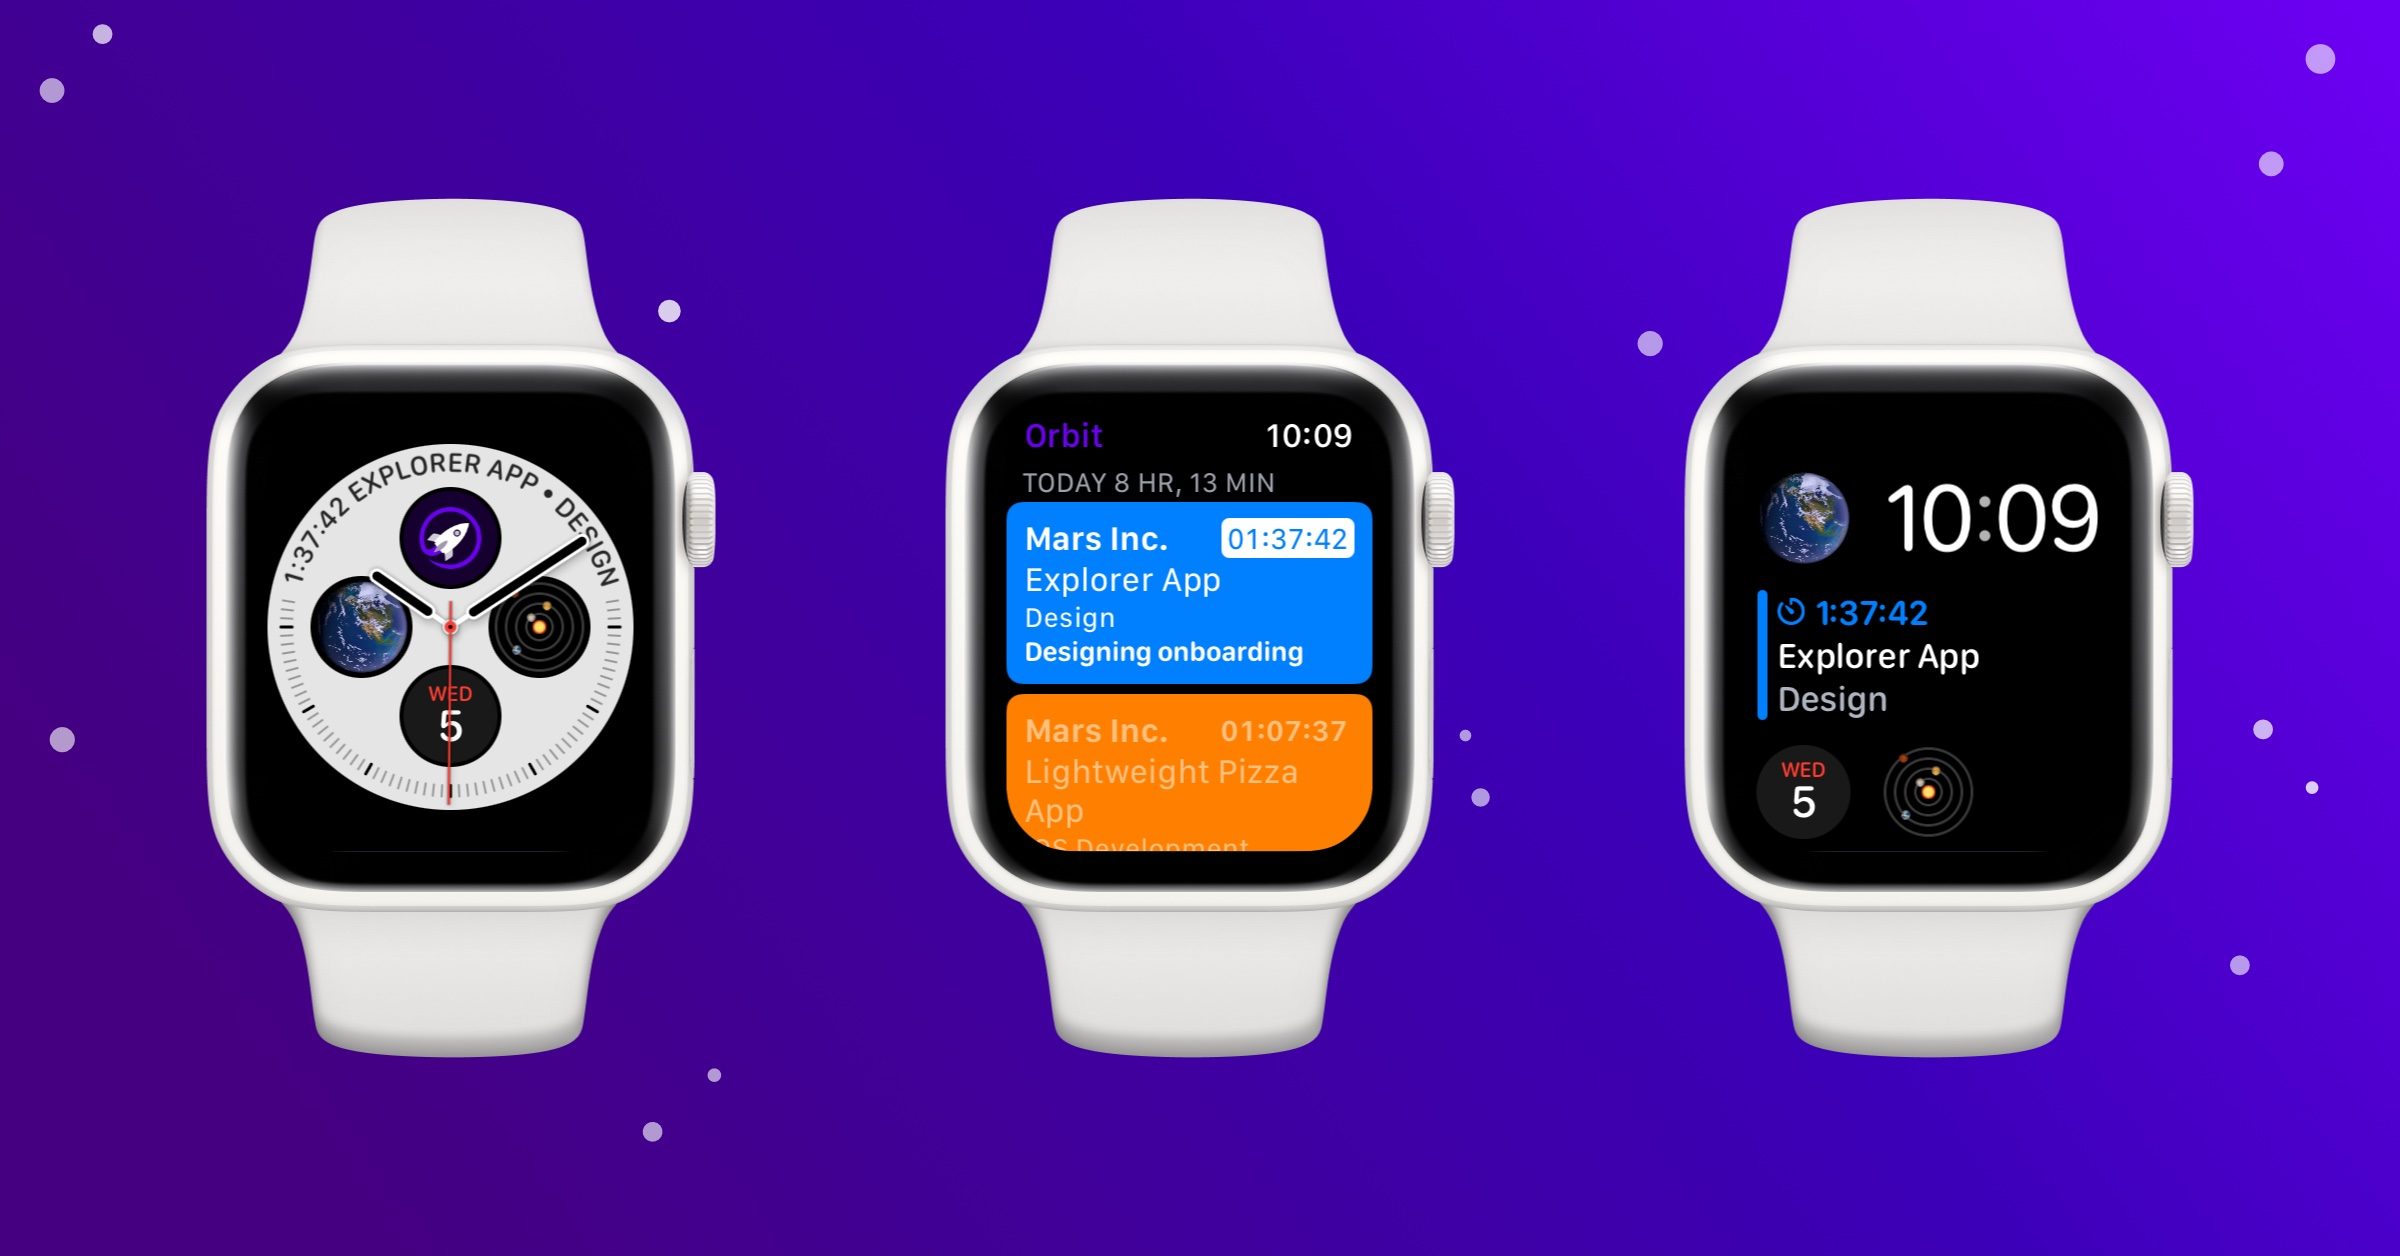 Smart invoices 'Orbit' app updated with Apple Watch version for the first time